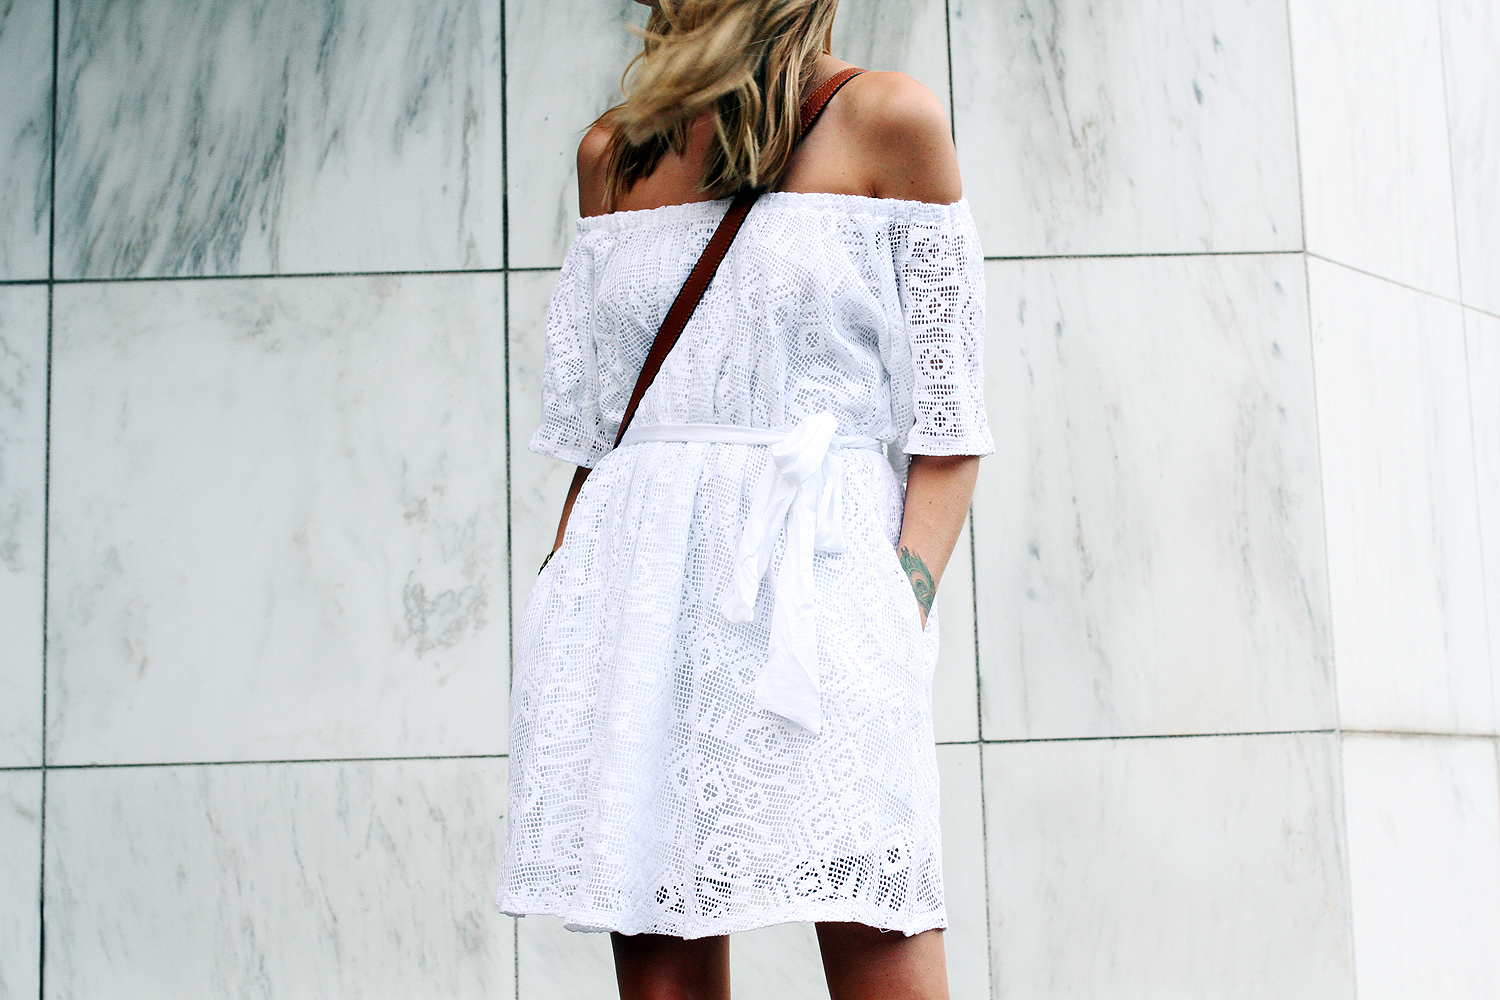 fashion-jackson-banana-republic-white-lace-off-the-shoulder-dress